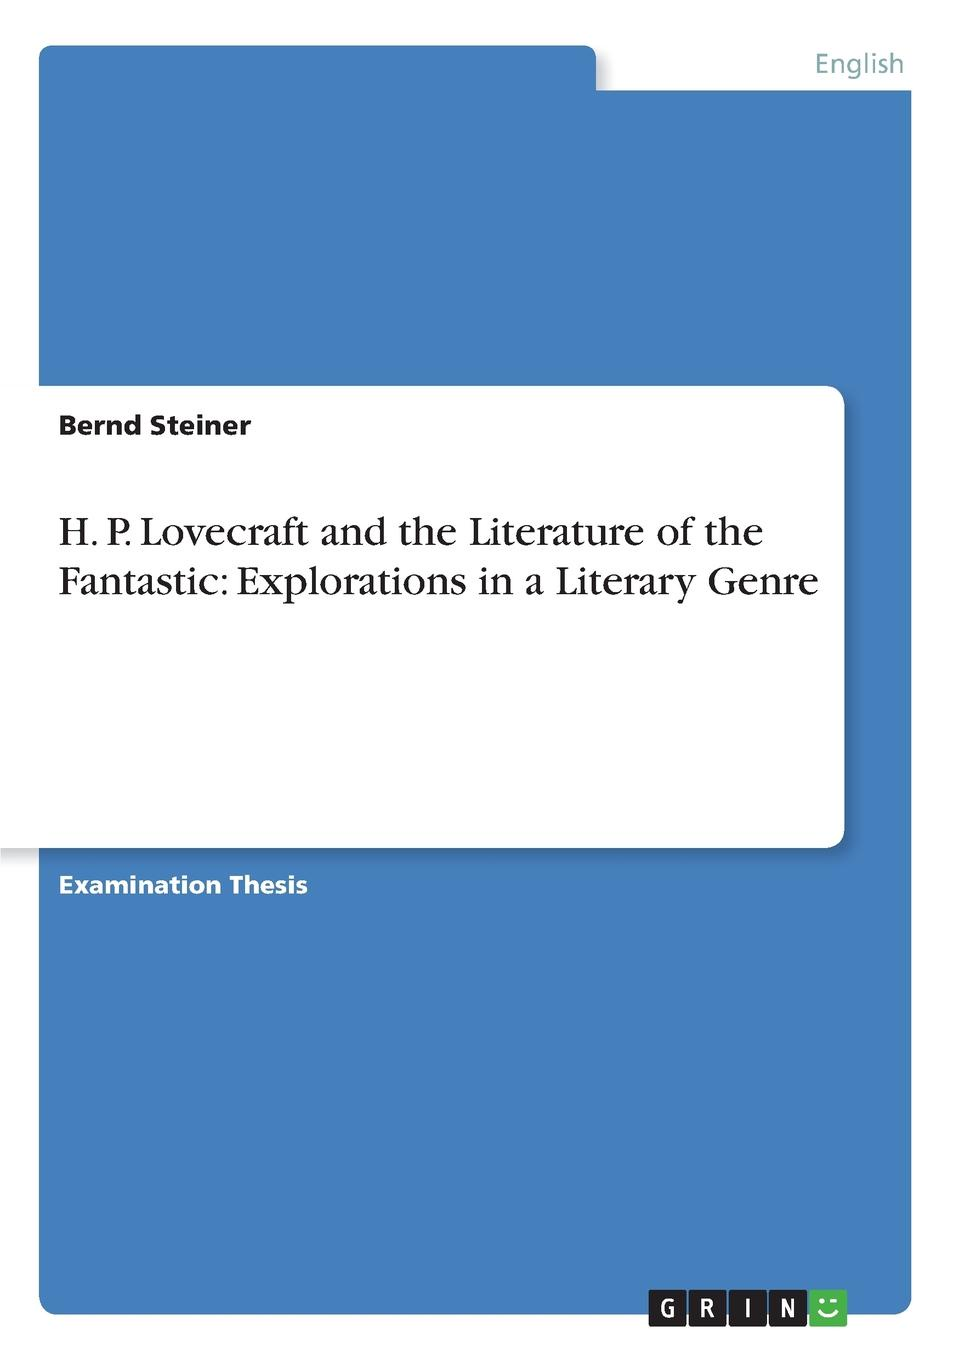 цены на Bernd Steiner H. P. Lovecraft and the Literature of the Fantastic. Explorations in a Literary Genre  в интернет-магазинах